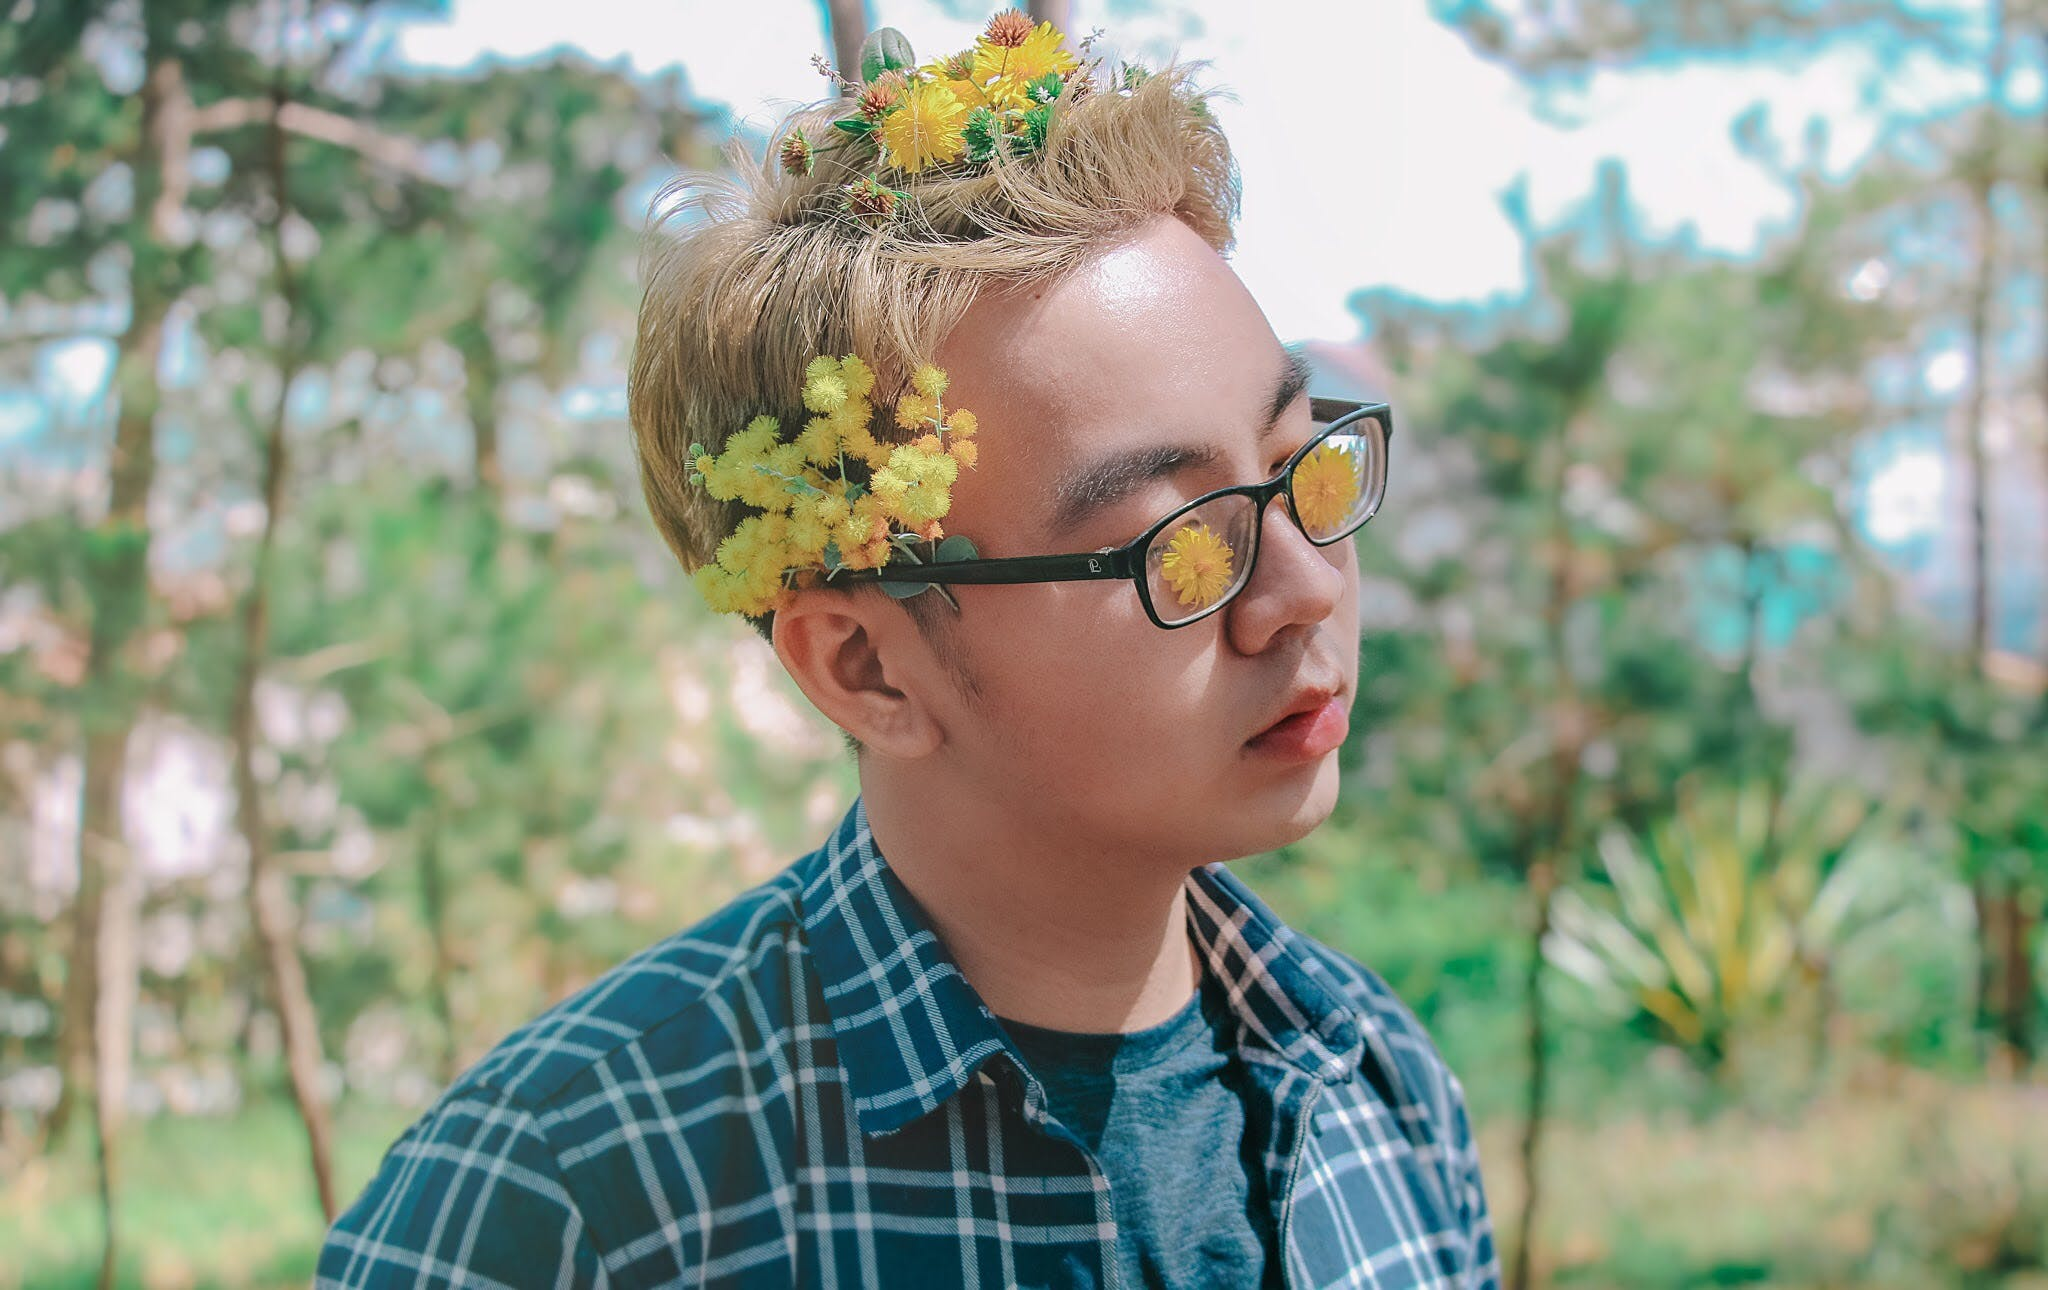 Photo of a Man with Flowers on His Hair